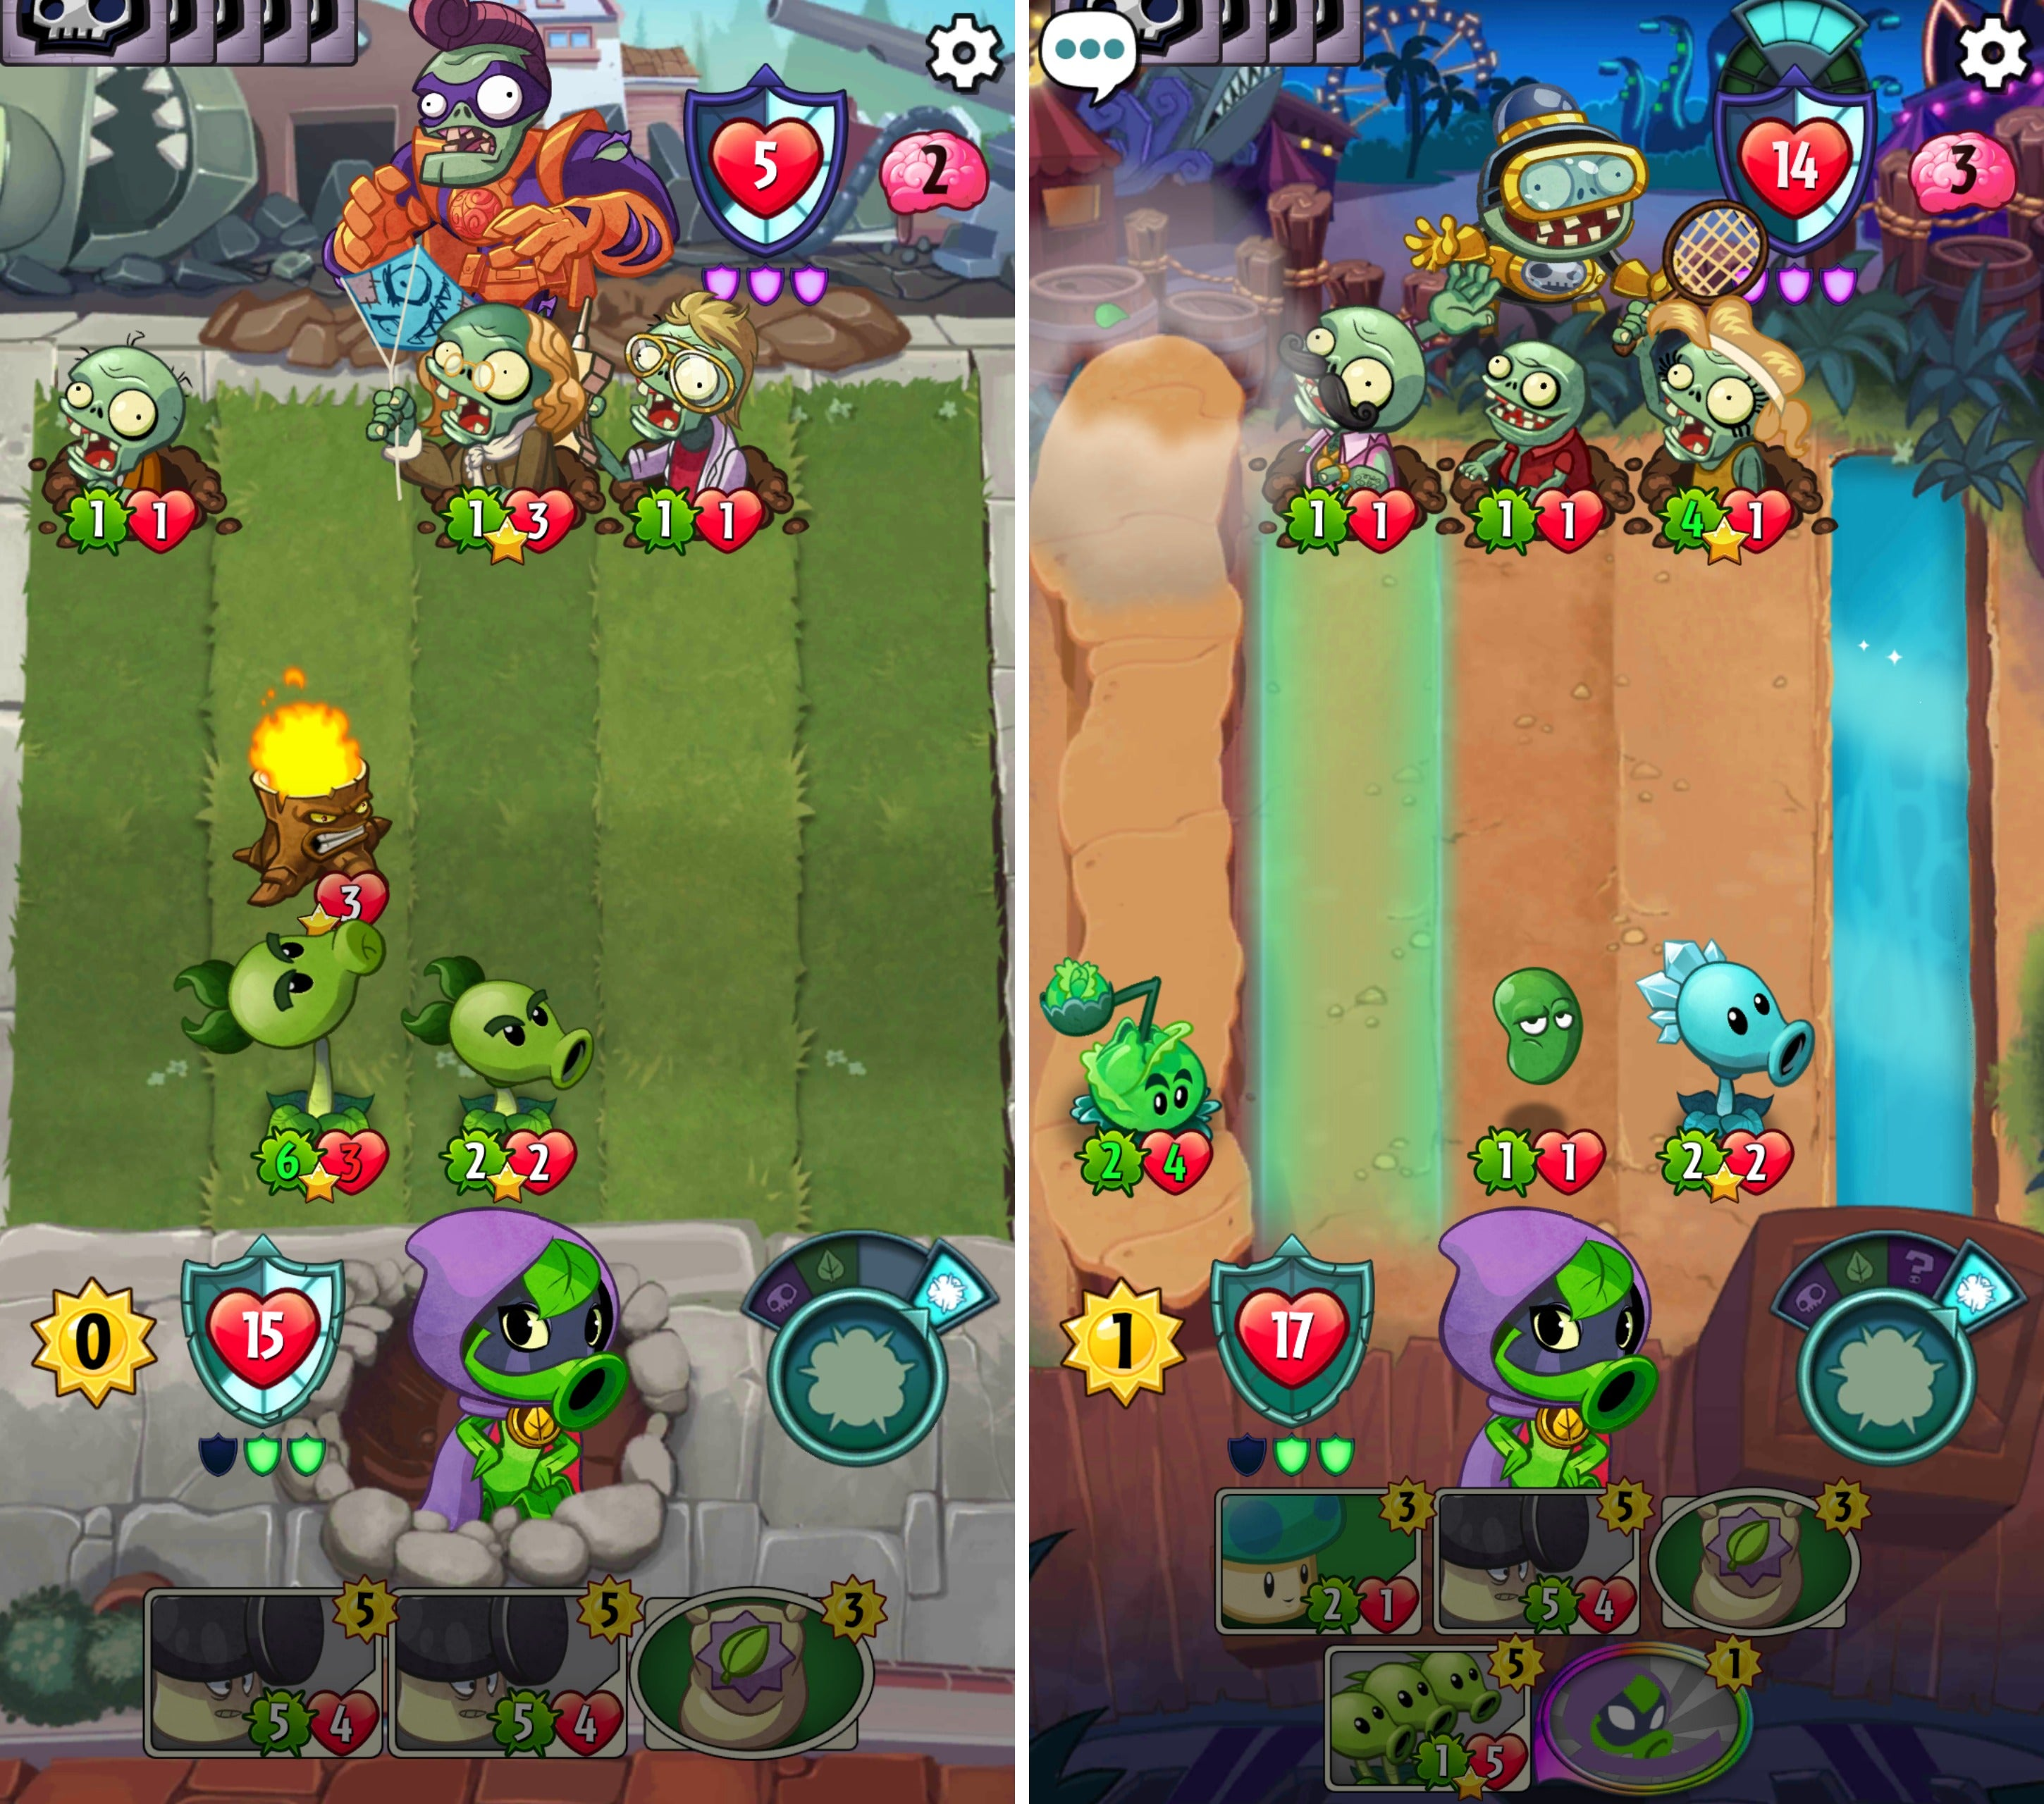 The best free Android games of 2016   Greenbot free android games 2016 pvzheroes  See larger image